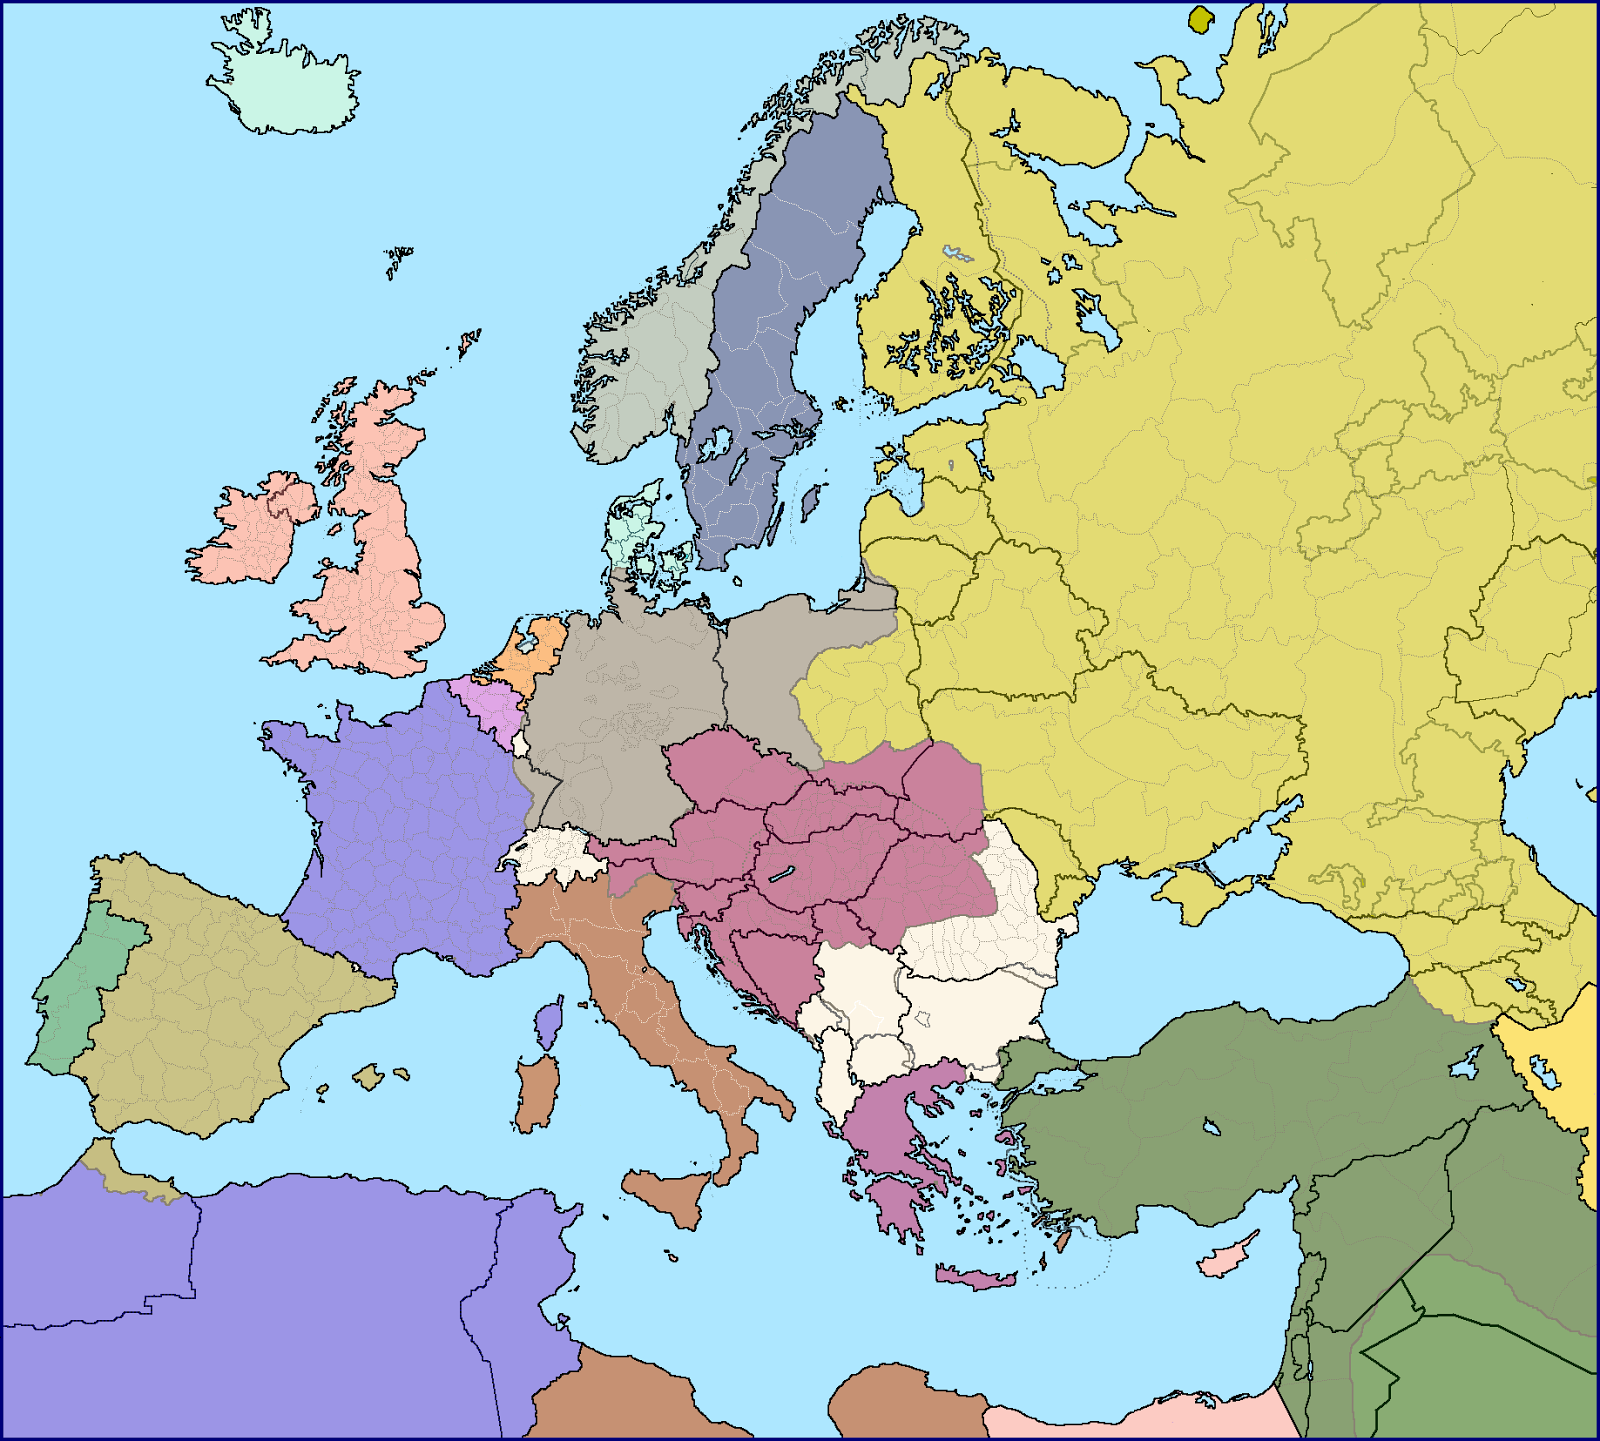 European borders in 1914 over current ones